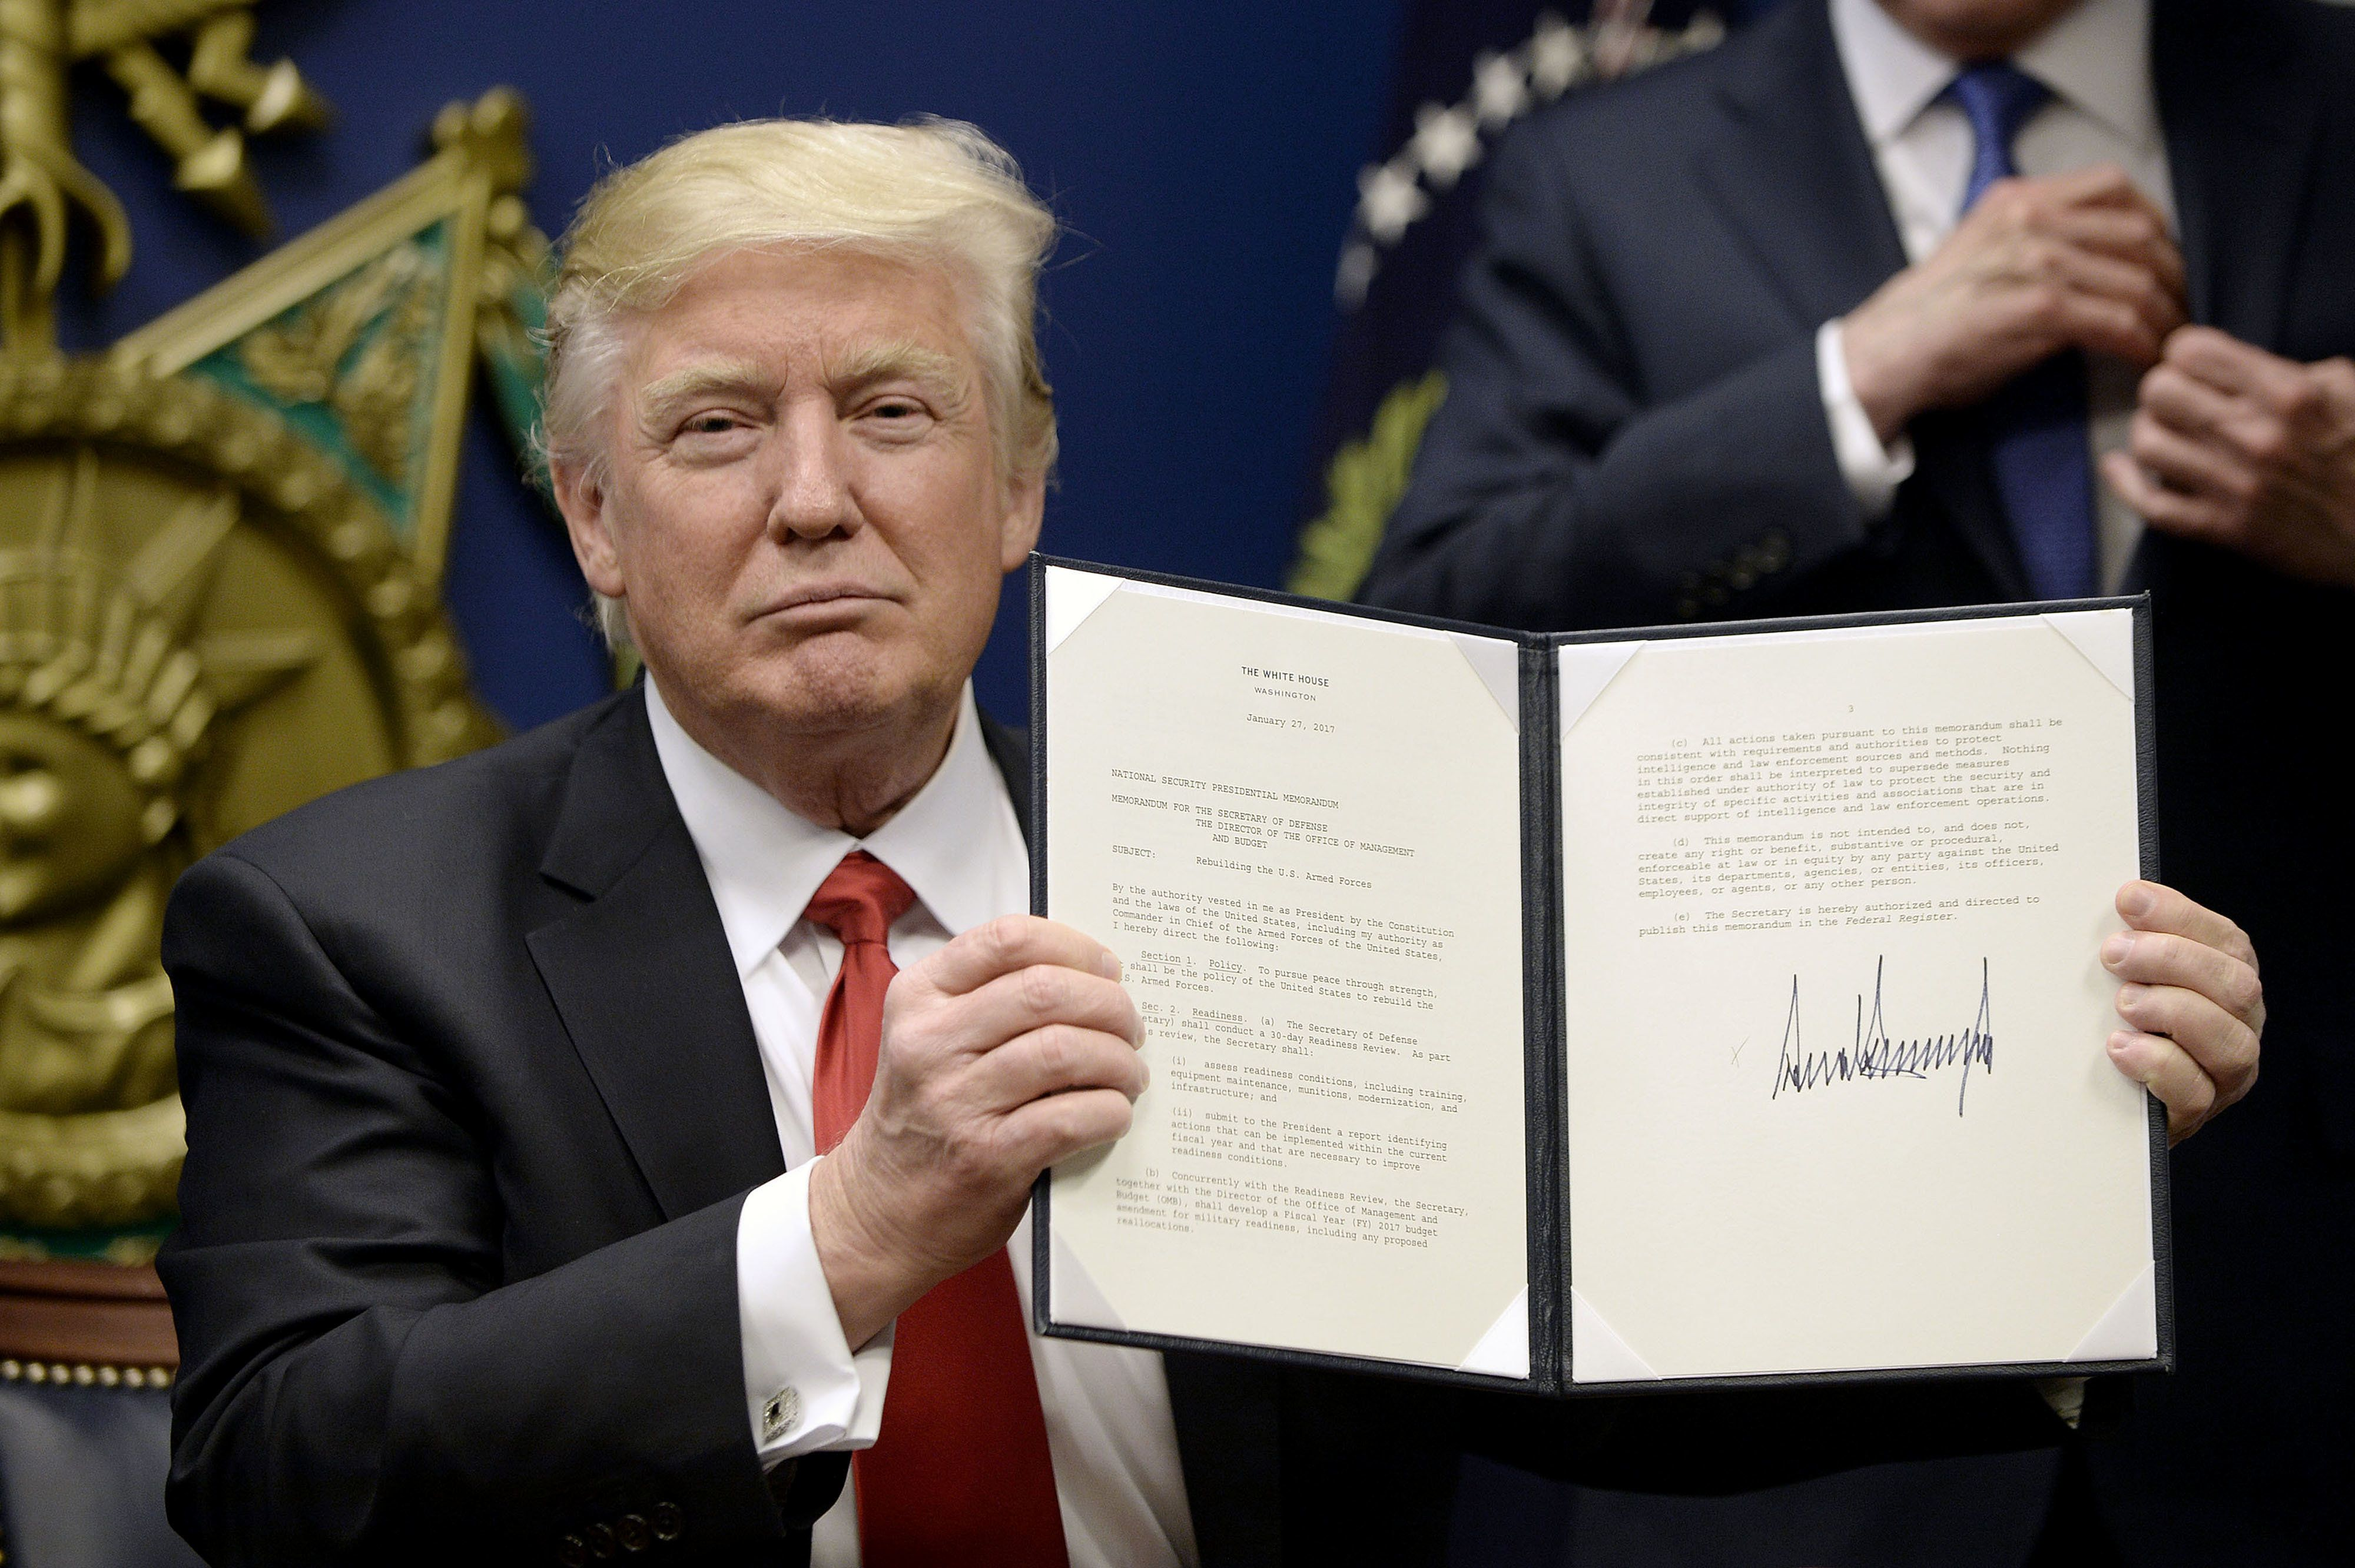 U.S. President Donald Trump holds up signed executive orders in the Hall of Heroes at the Department of Defense in Arlington, Virginia, U.S. on Friday, Jan. 27, 2017. Trump signed an executive action on Friday to establish new vetting procedures for some people seeking to enter the U.S., saying the measure would prevent terrorists from being admitted into the country. Photographer: Olivier Douliery/Pool via Bloomberg